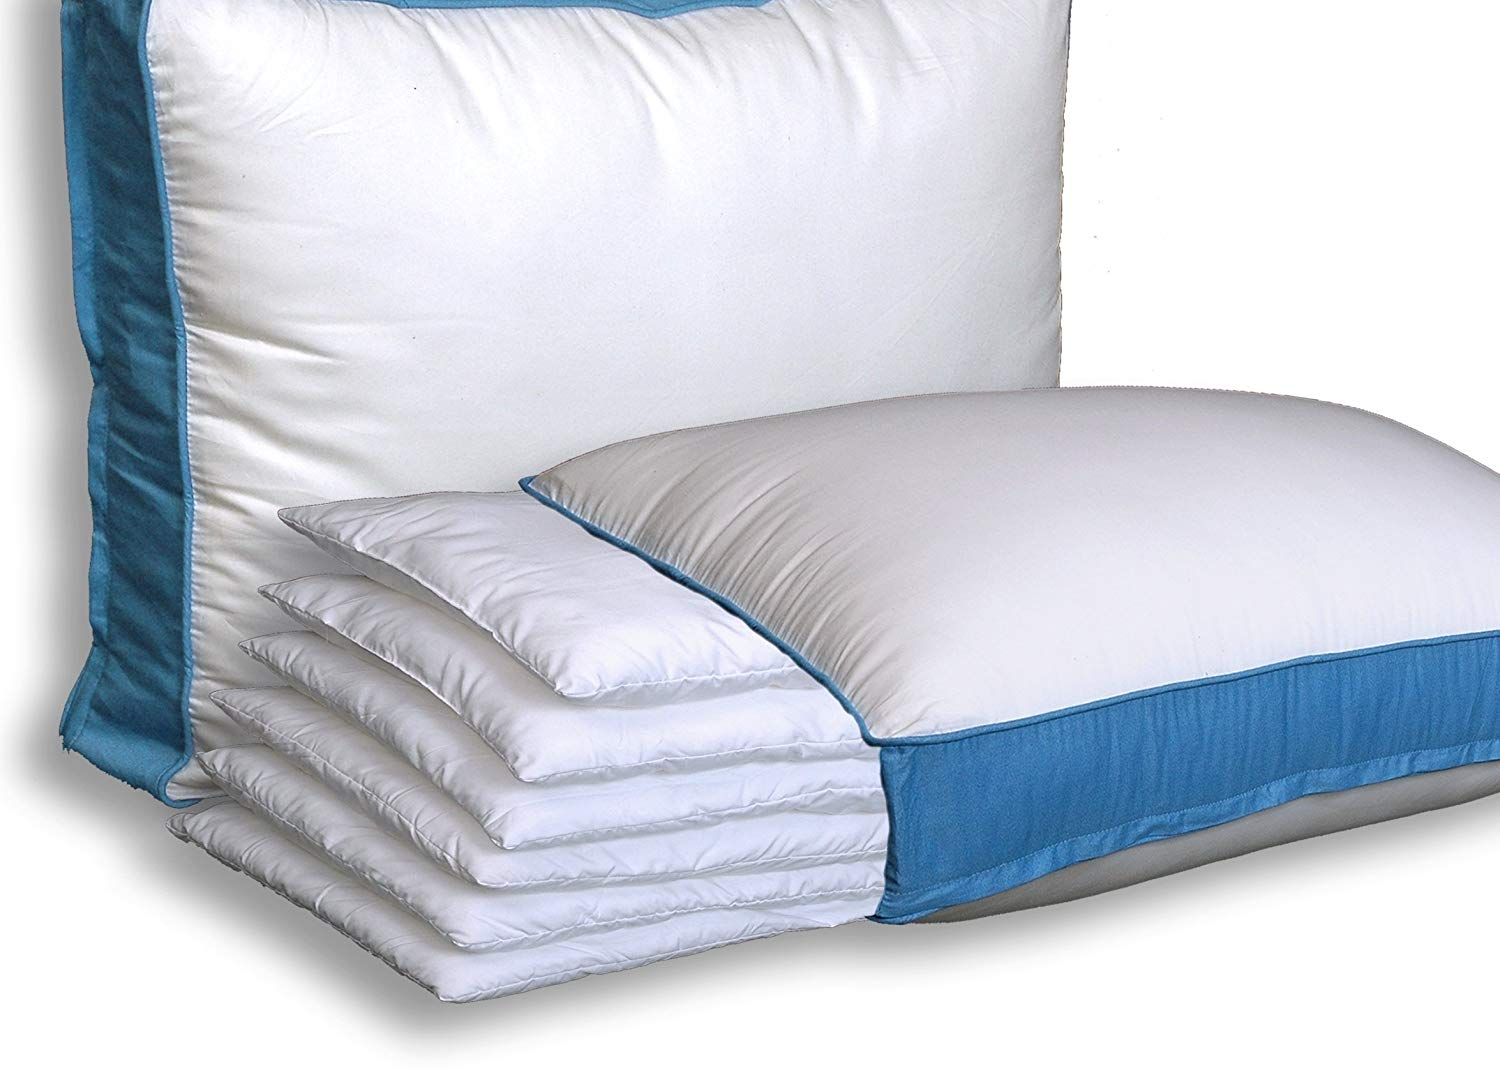 Gel Pillow Australia Flat Pillow Top Brands And Buying Guide For 2019 Snoremagazine